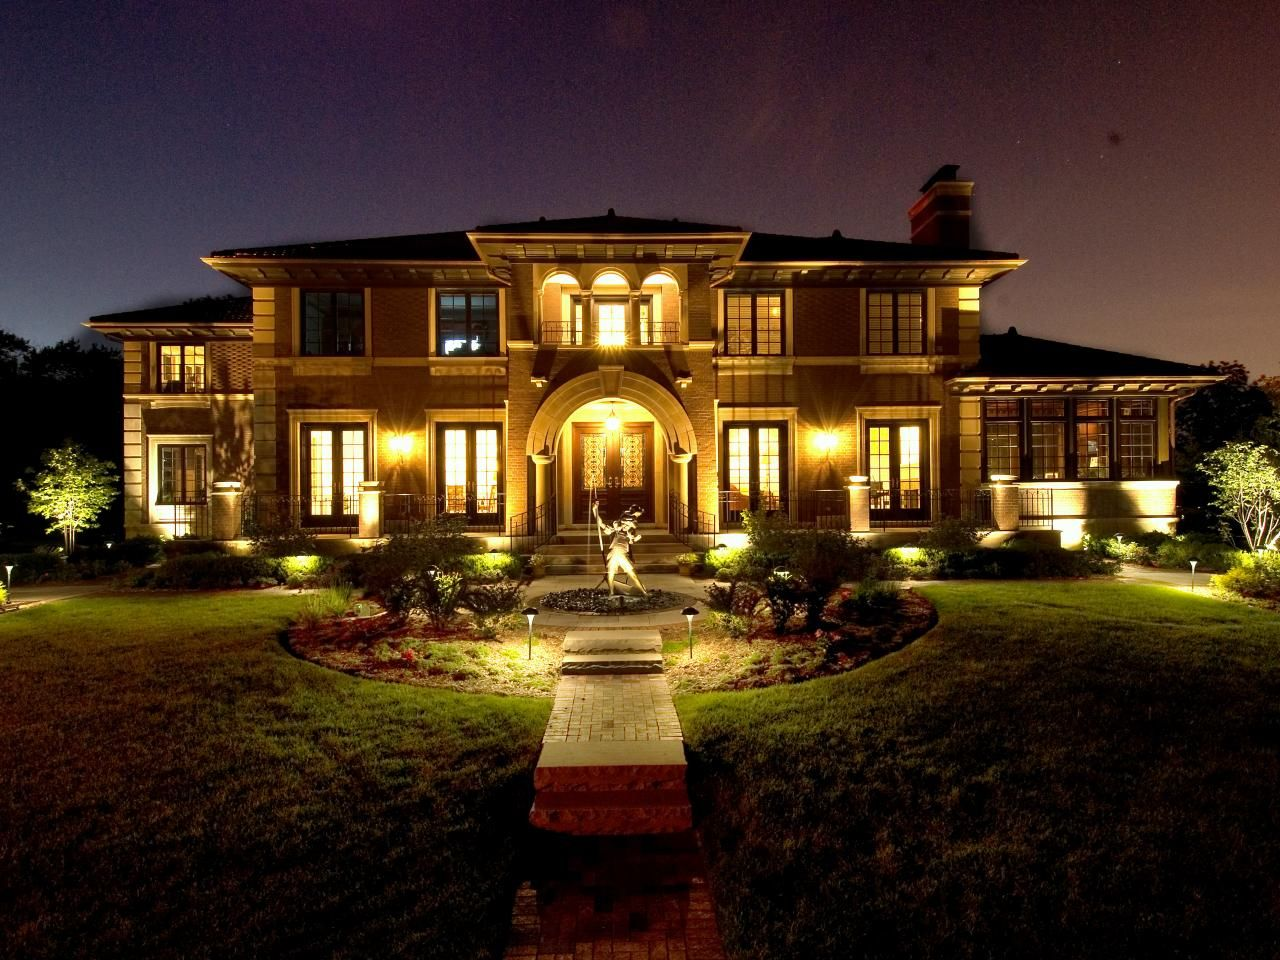 22 Landscape Lighting Ideas | Electrical wiring, Ceiling fan and ...